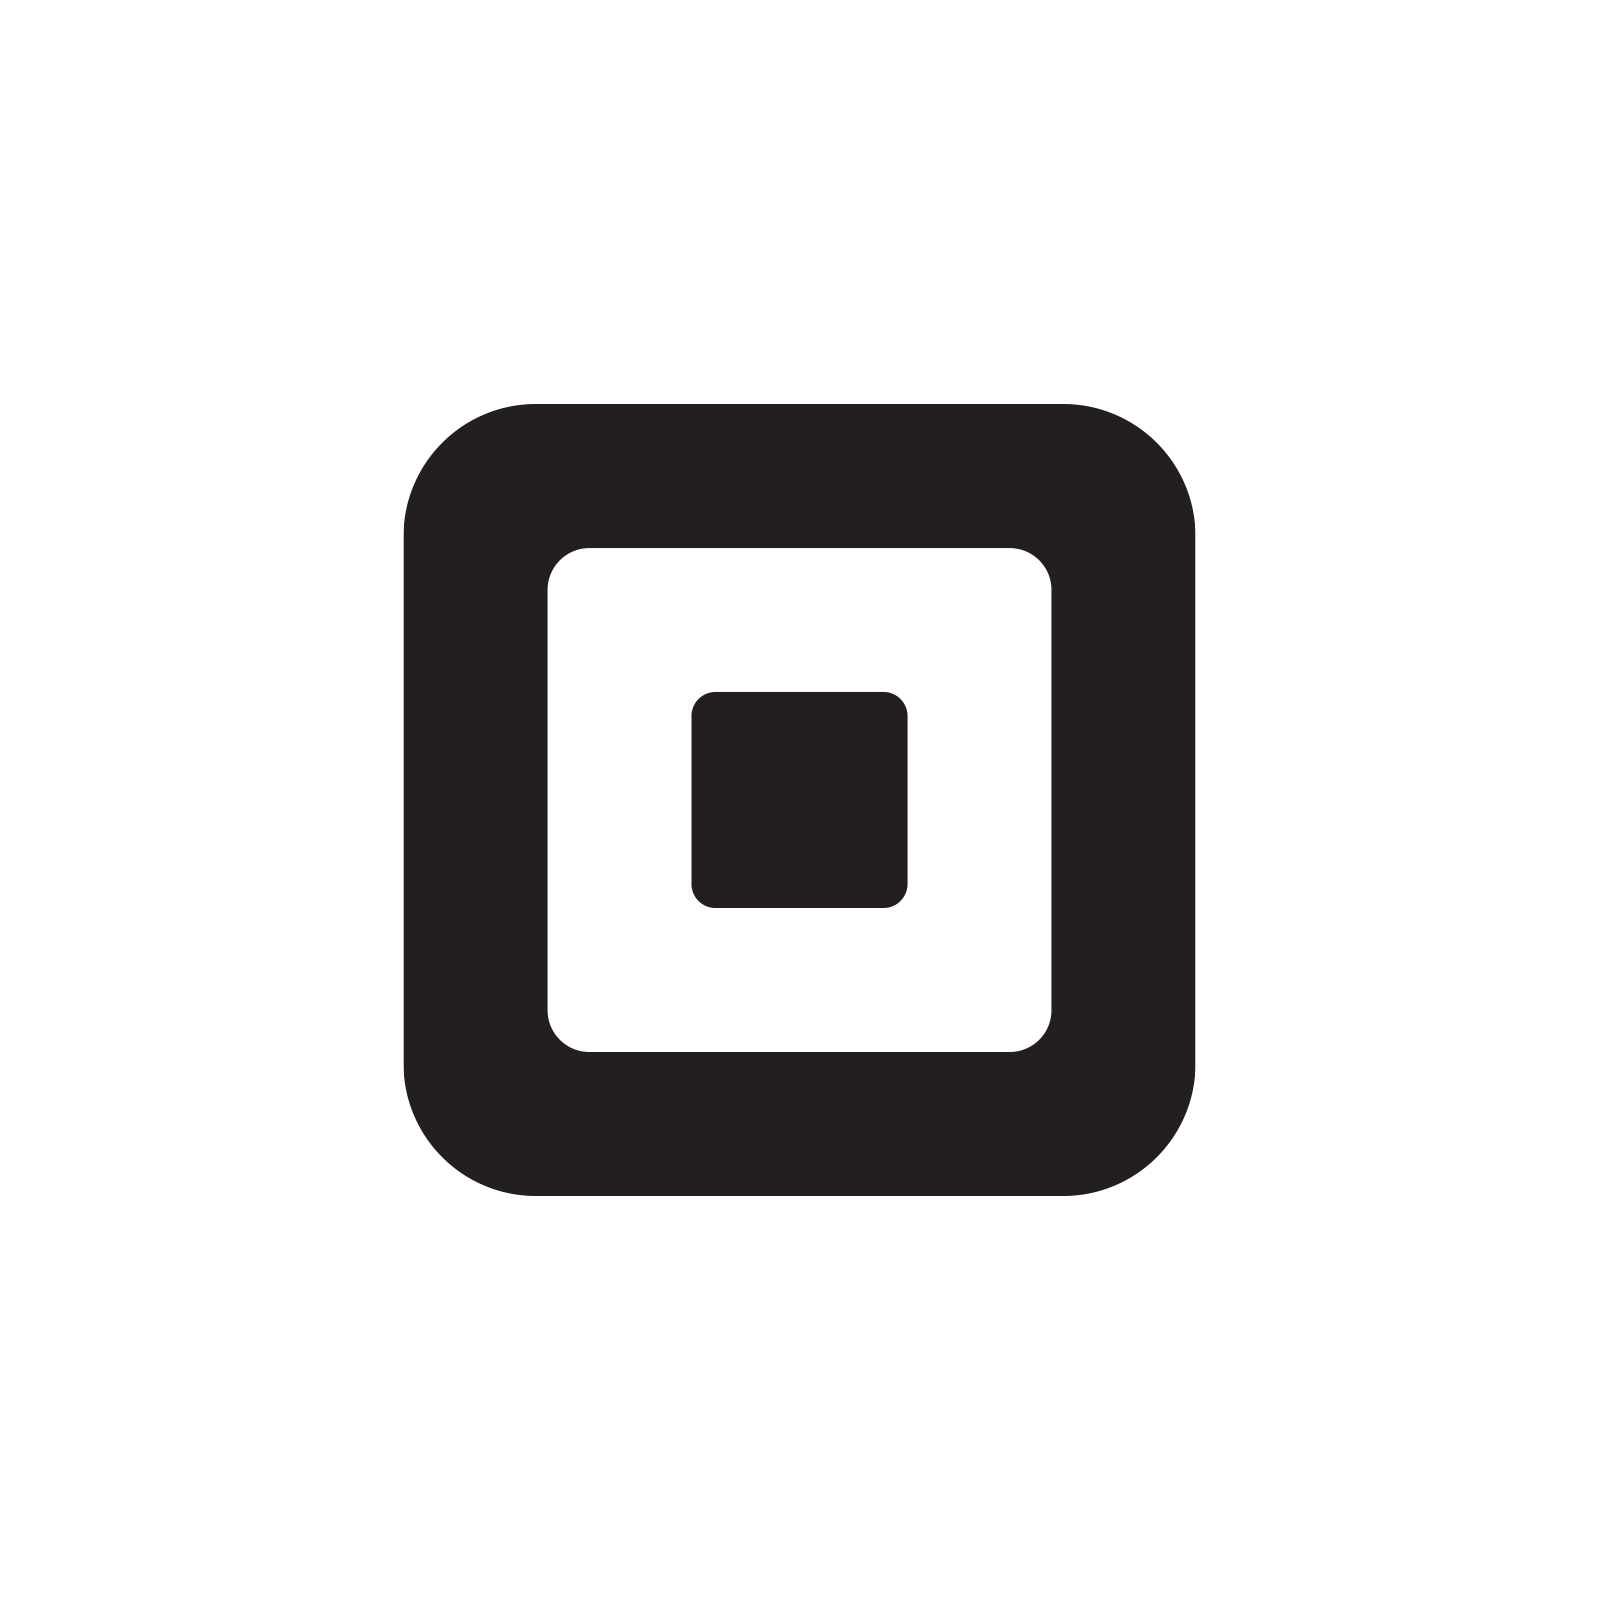 Square Expert Services